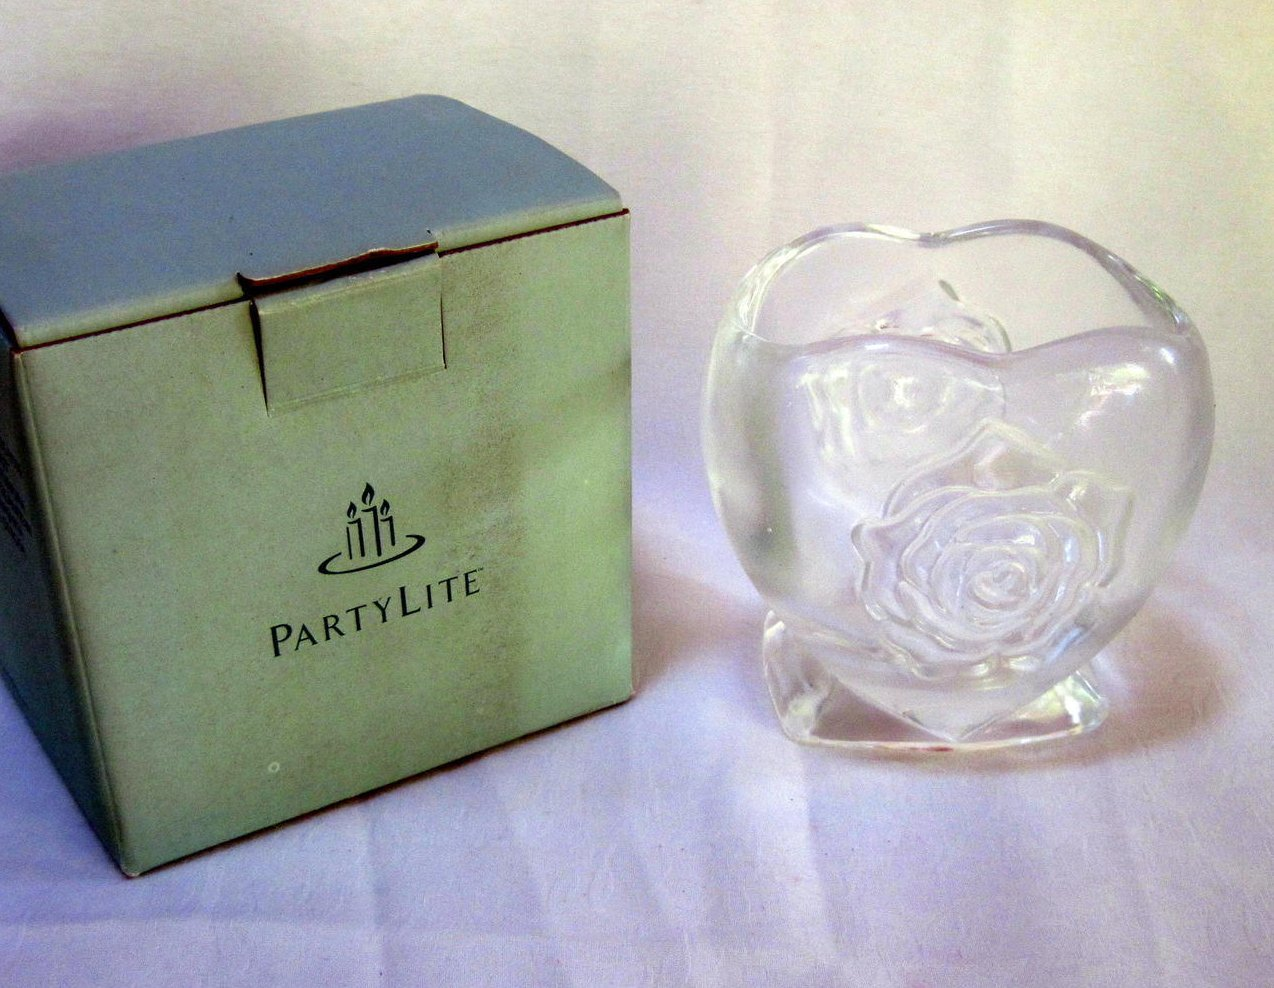 PartyLite Rosehearts Tealight or Votive Candle Holder P7256